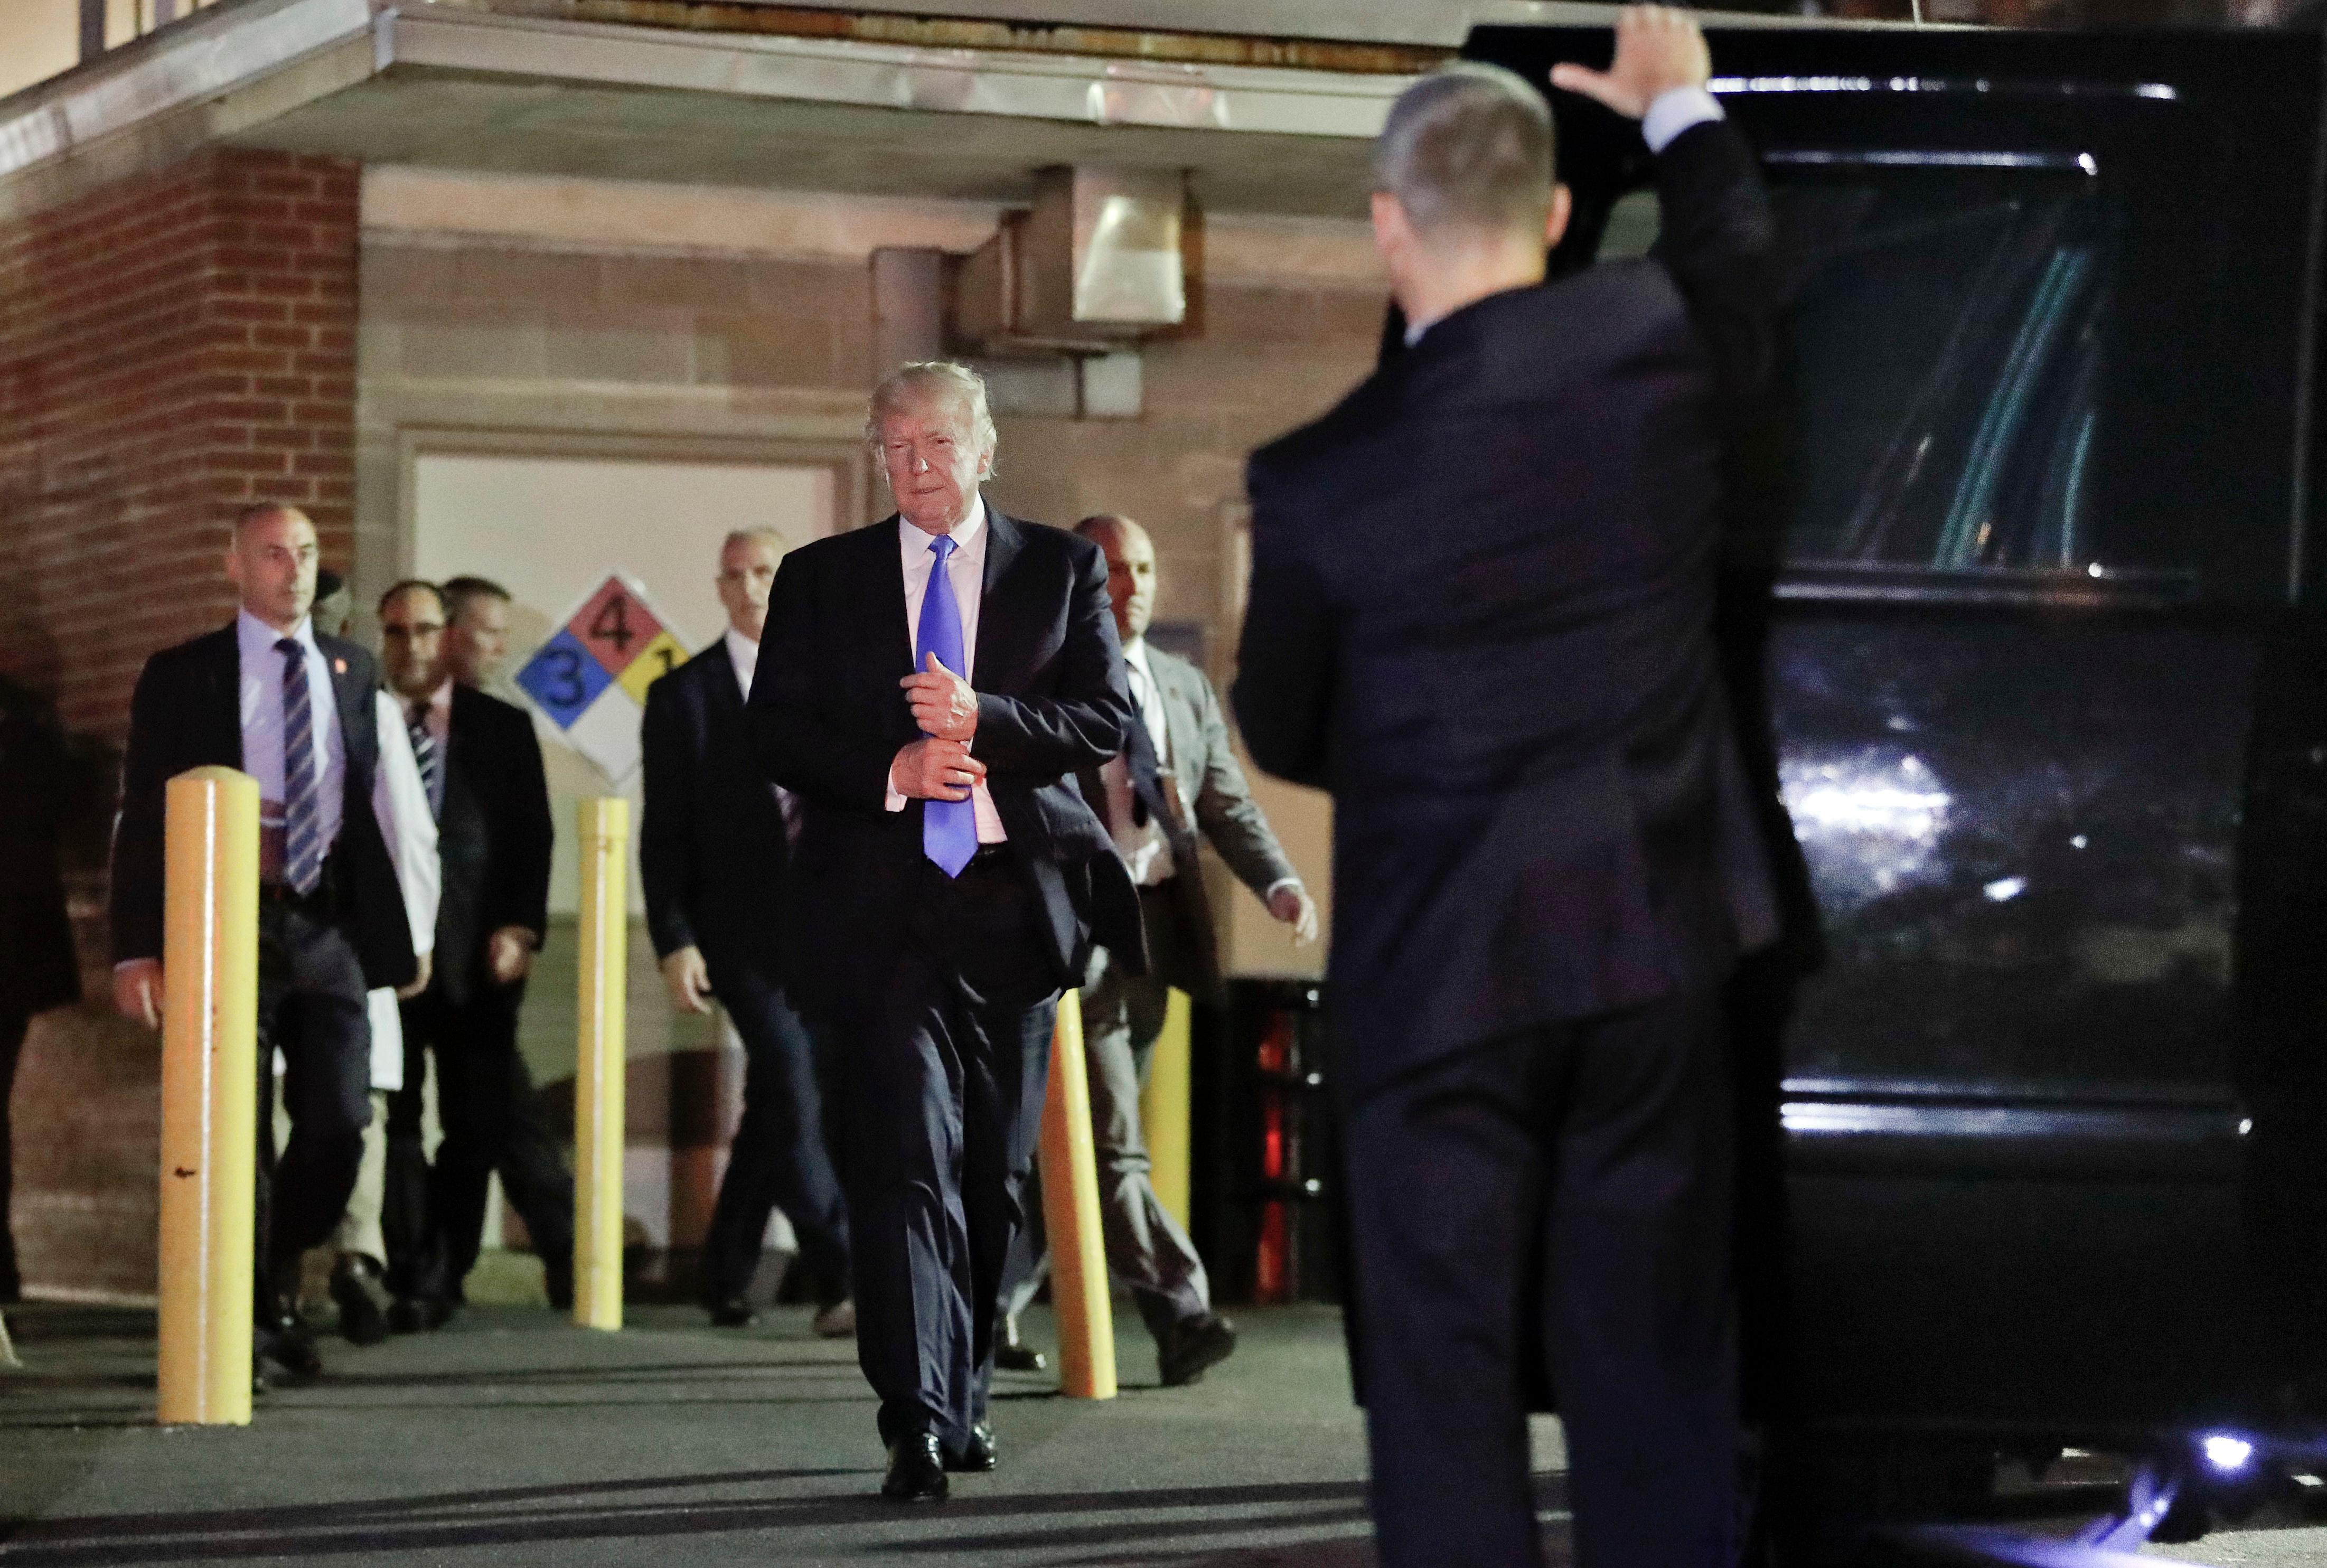 President Donald Trump walks to his motorcade vehicle after visiting MedStar Washington Hospital Center in Washington, Wednesday, June 14, 2017, where House Majority Leader Steve Scalise of La. was taken after being shot in Alexandria, Va., during a Congressional baseball practice. (AP Photo/Pablo Martinez Monsivais)